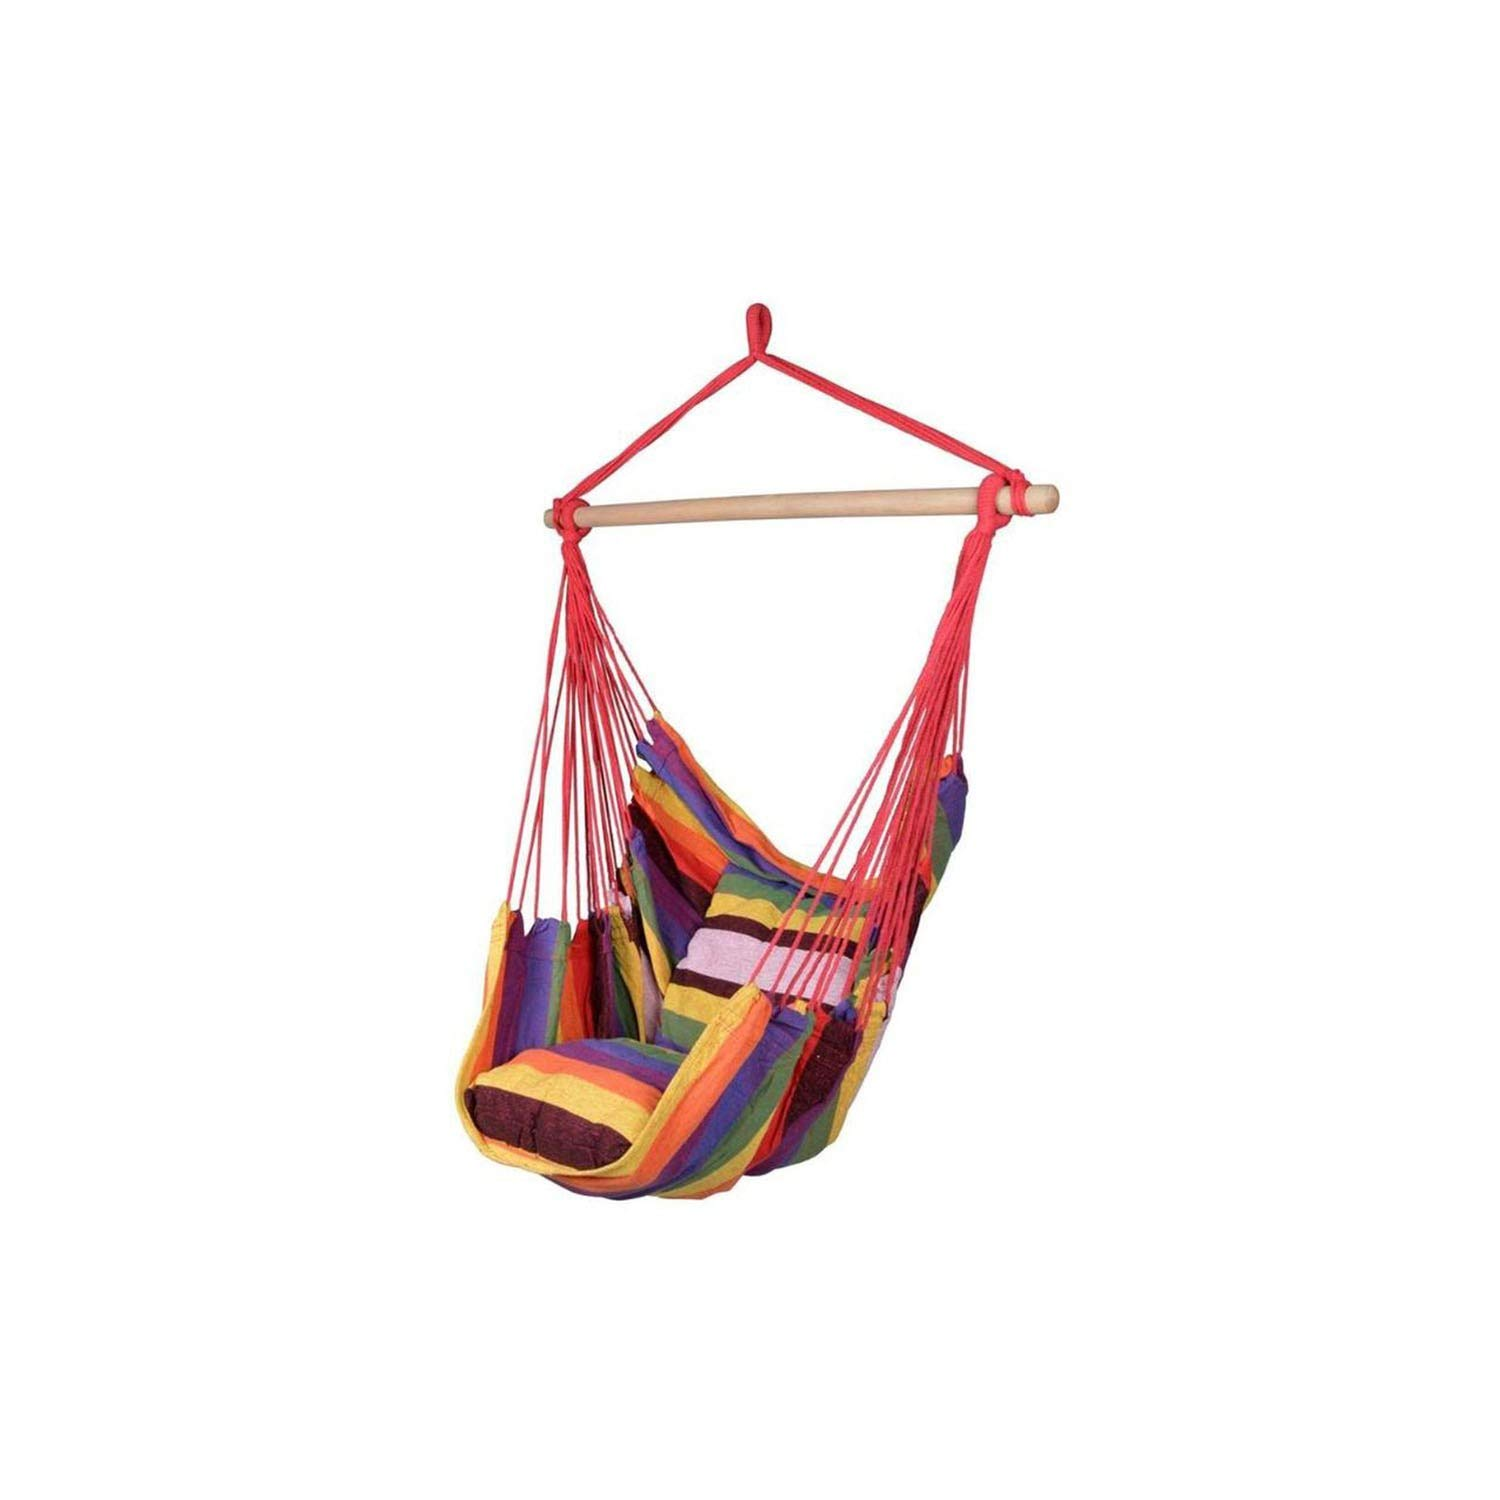 Red YAHAN Outdoor Hammock Chair Hanging Chair Swinging with 2 Pillows Hammock